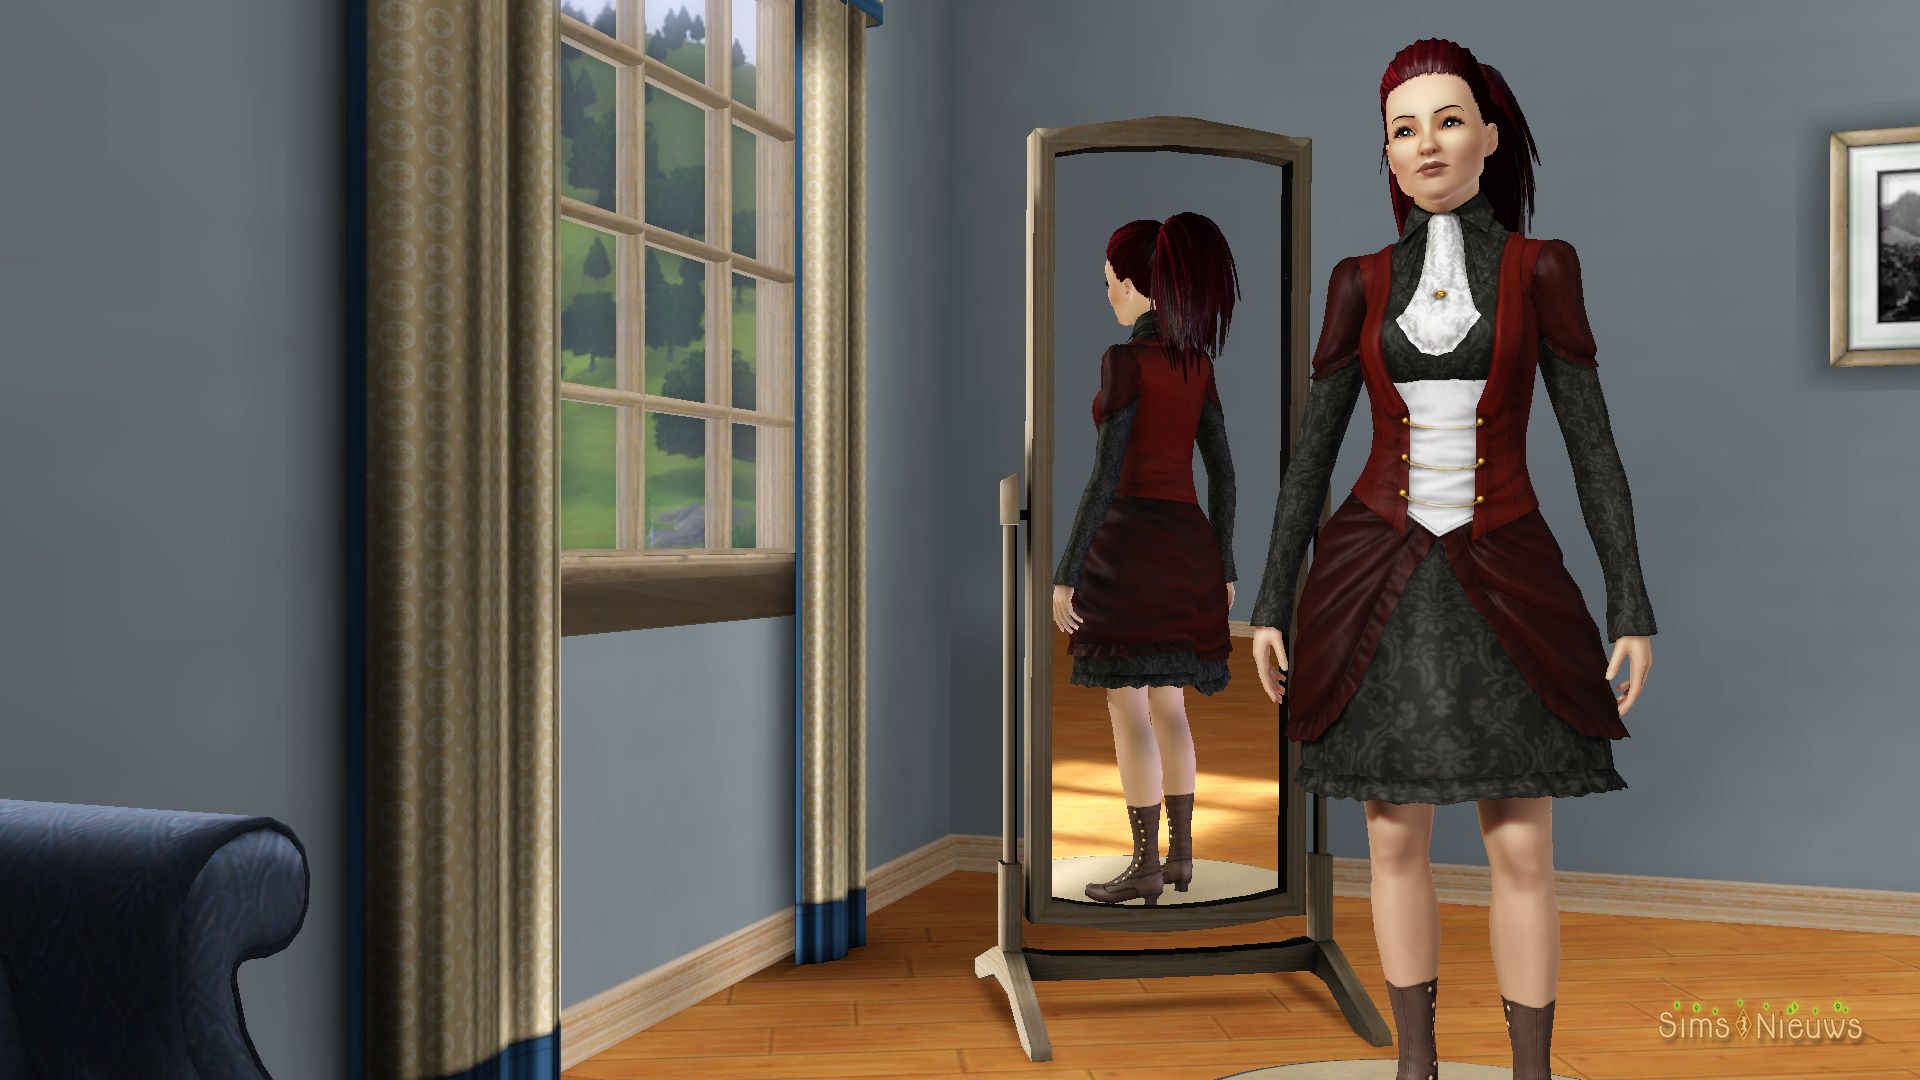 De Sims 3 Midnight Hollow